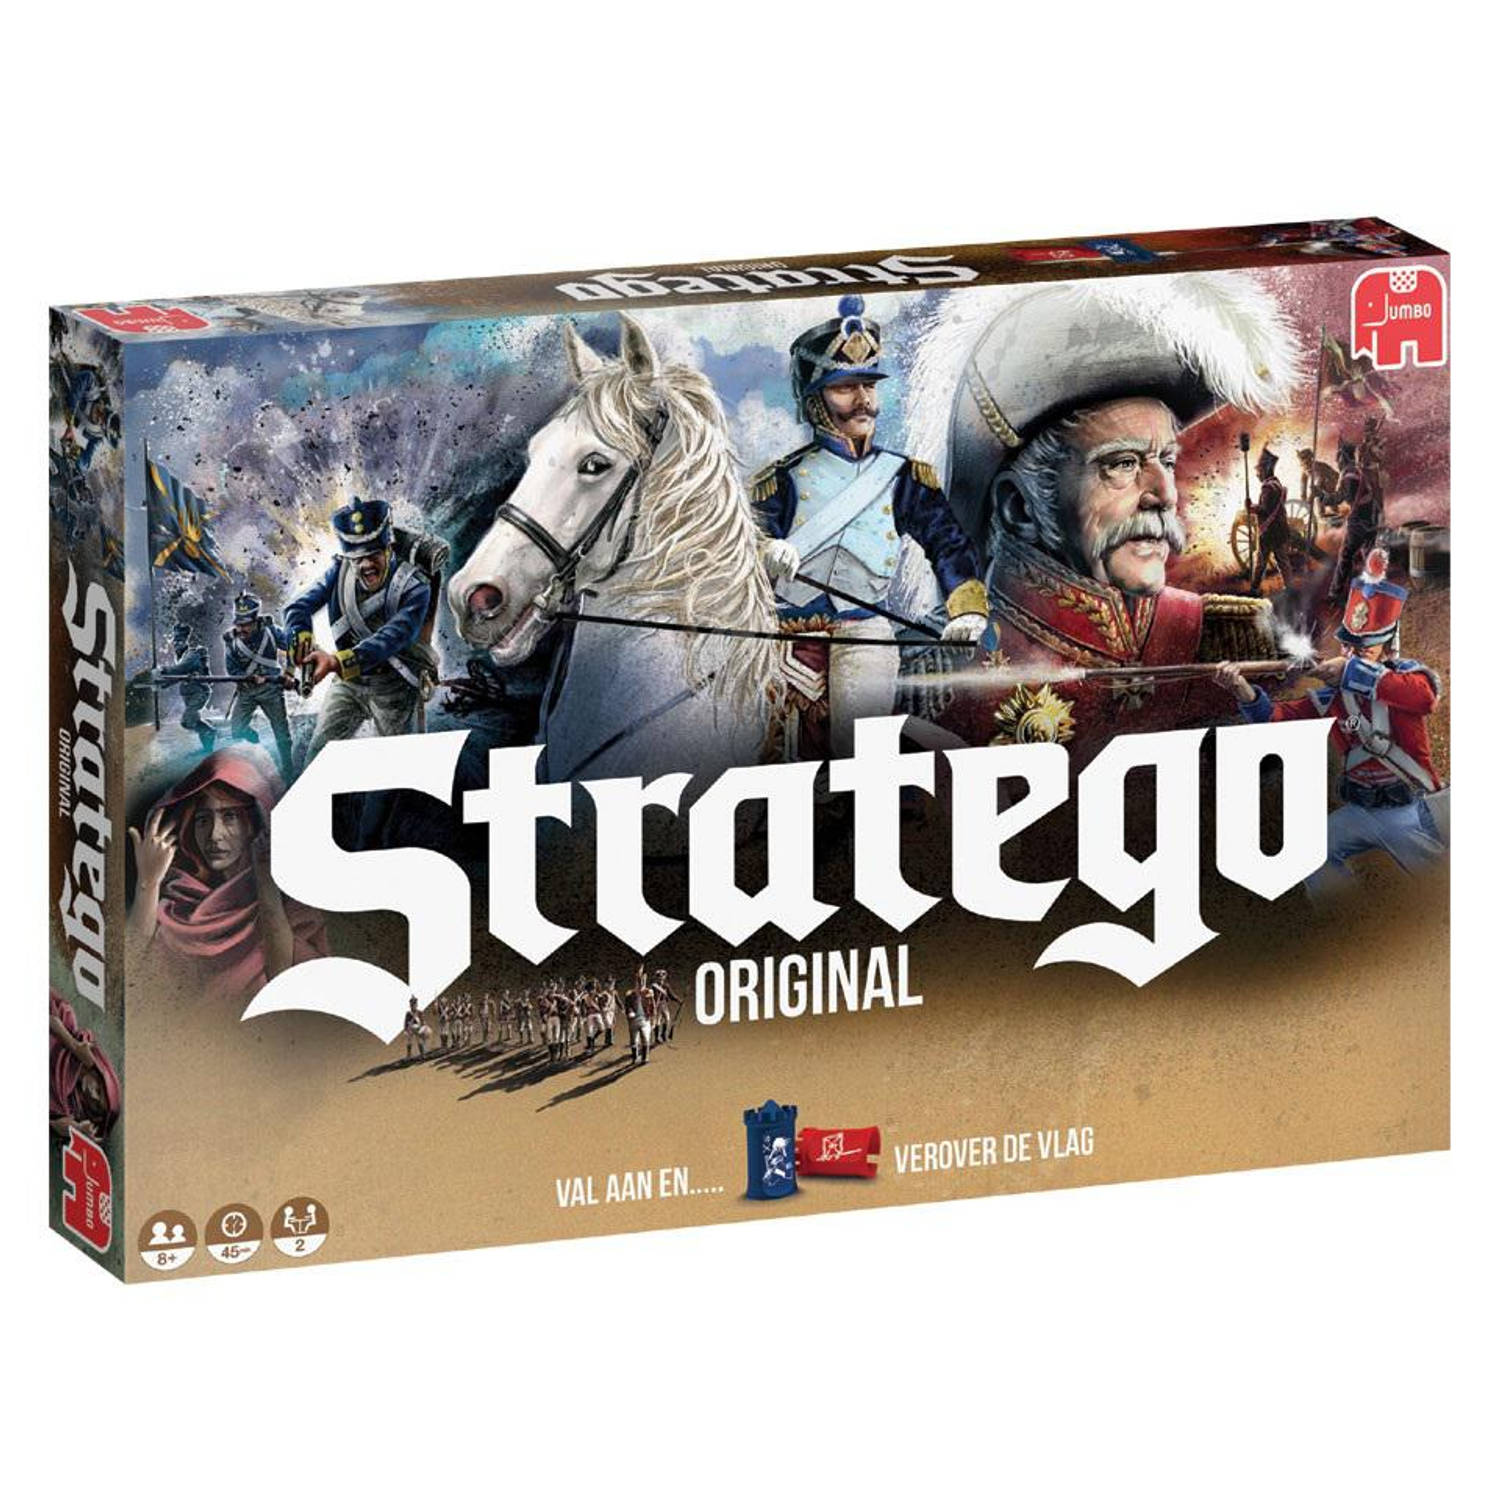 Korting Jumbo Stratego Original 2017